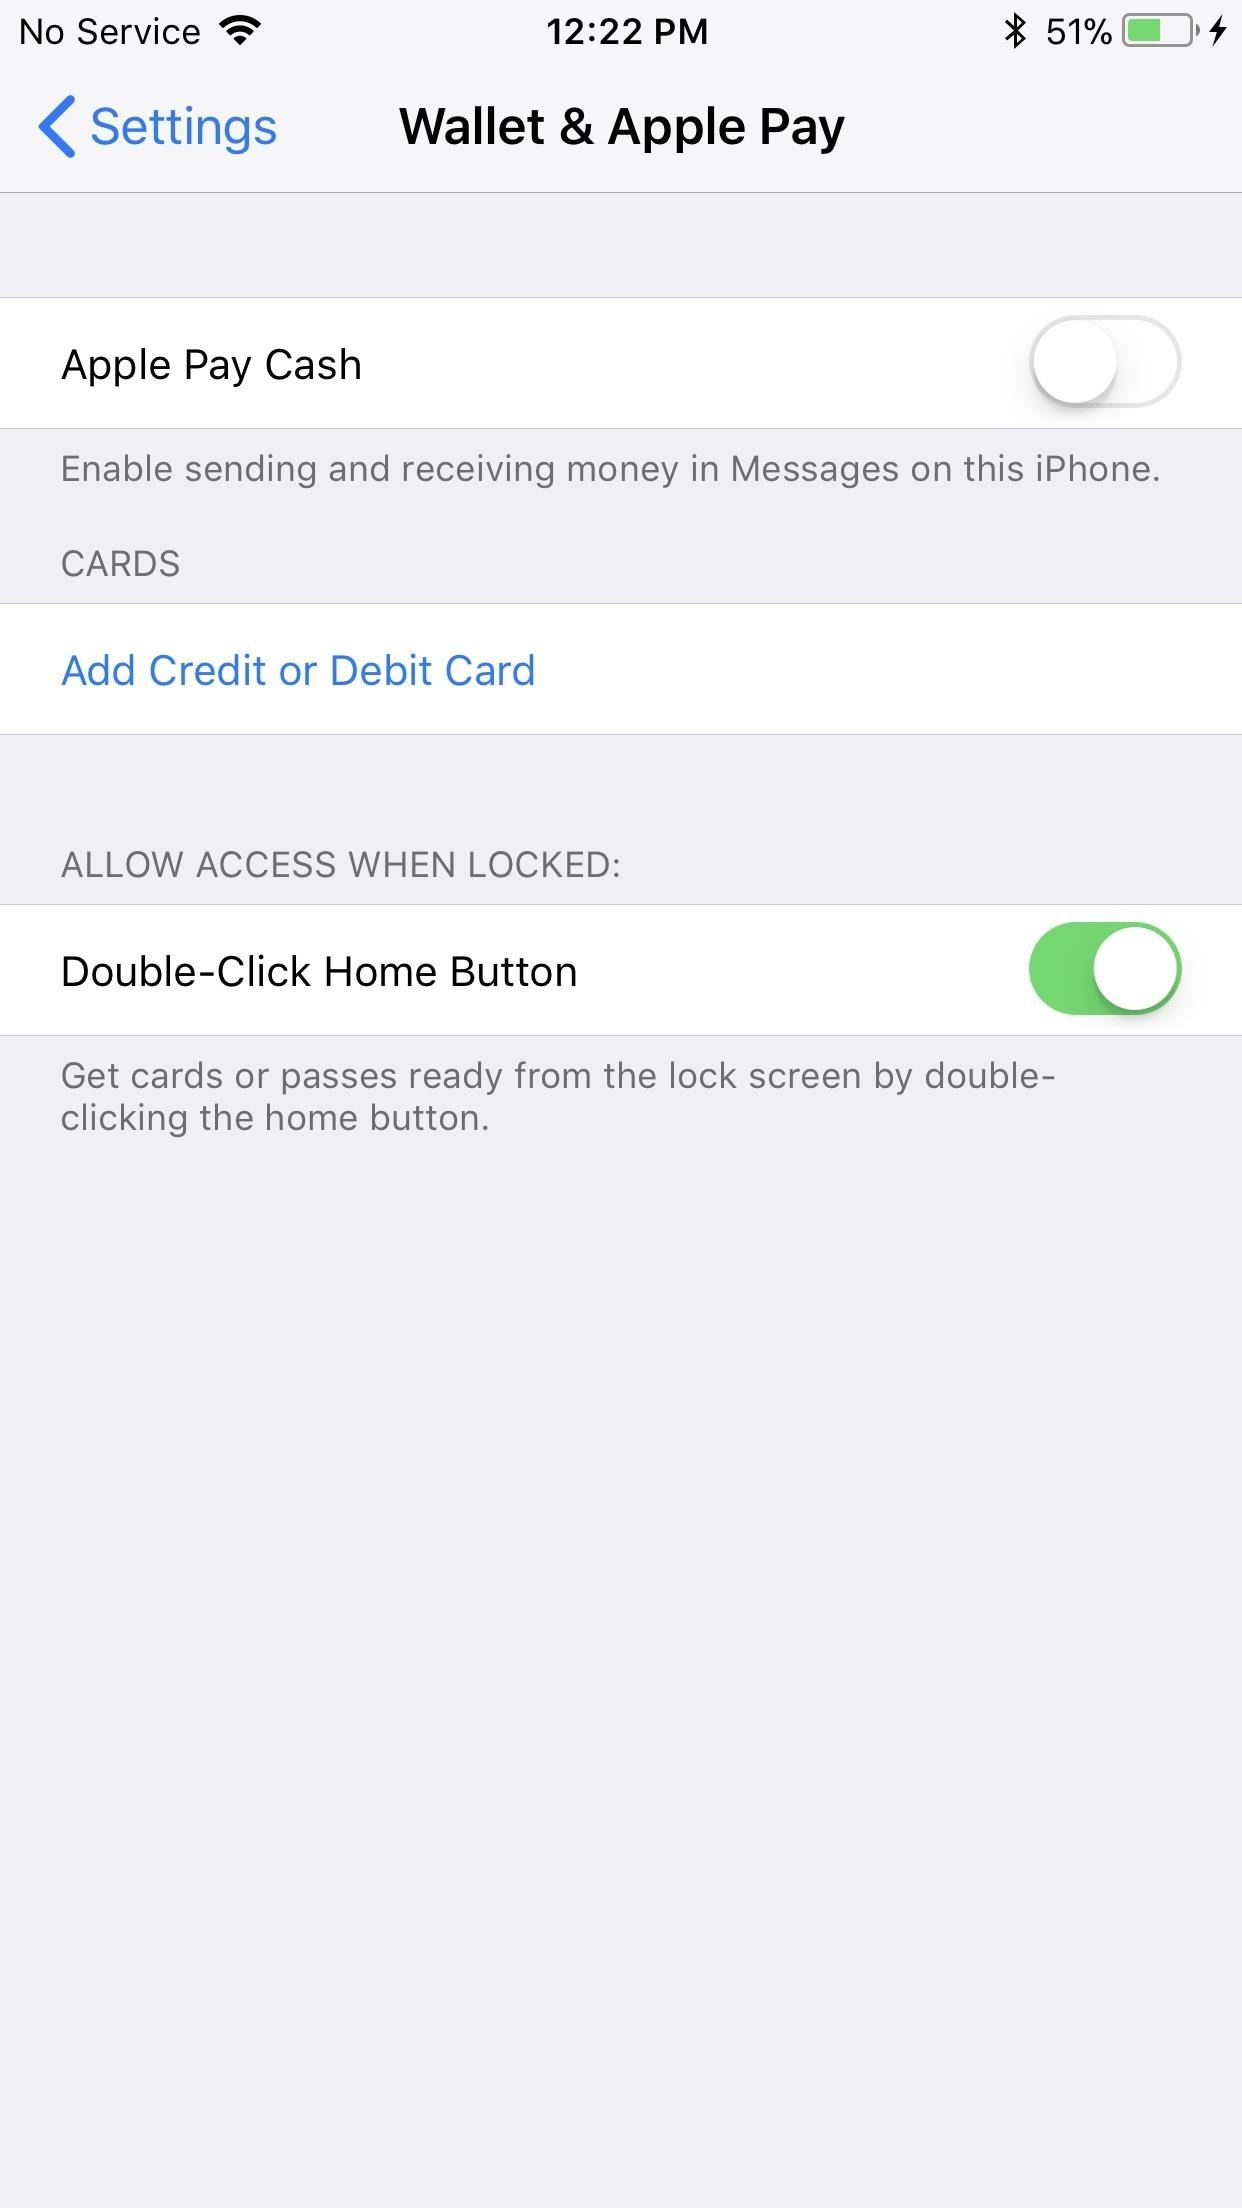 How to Send & Receive Apple Pay Cash via Messages in iOS 11